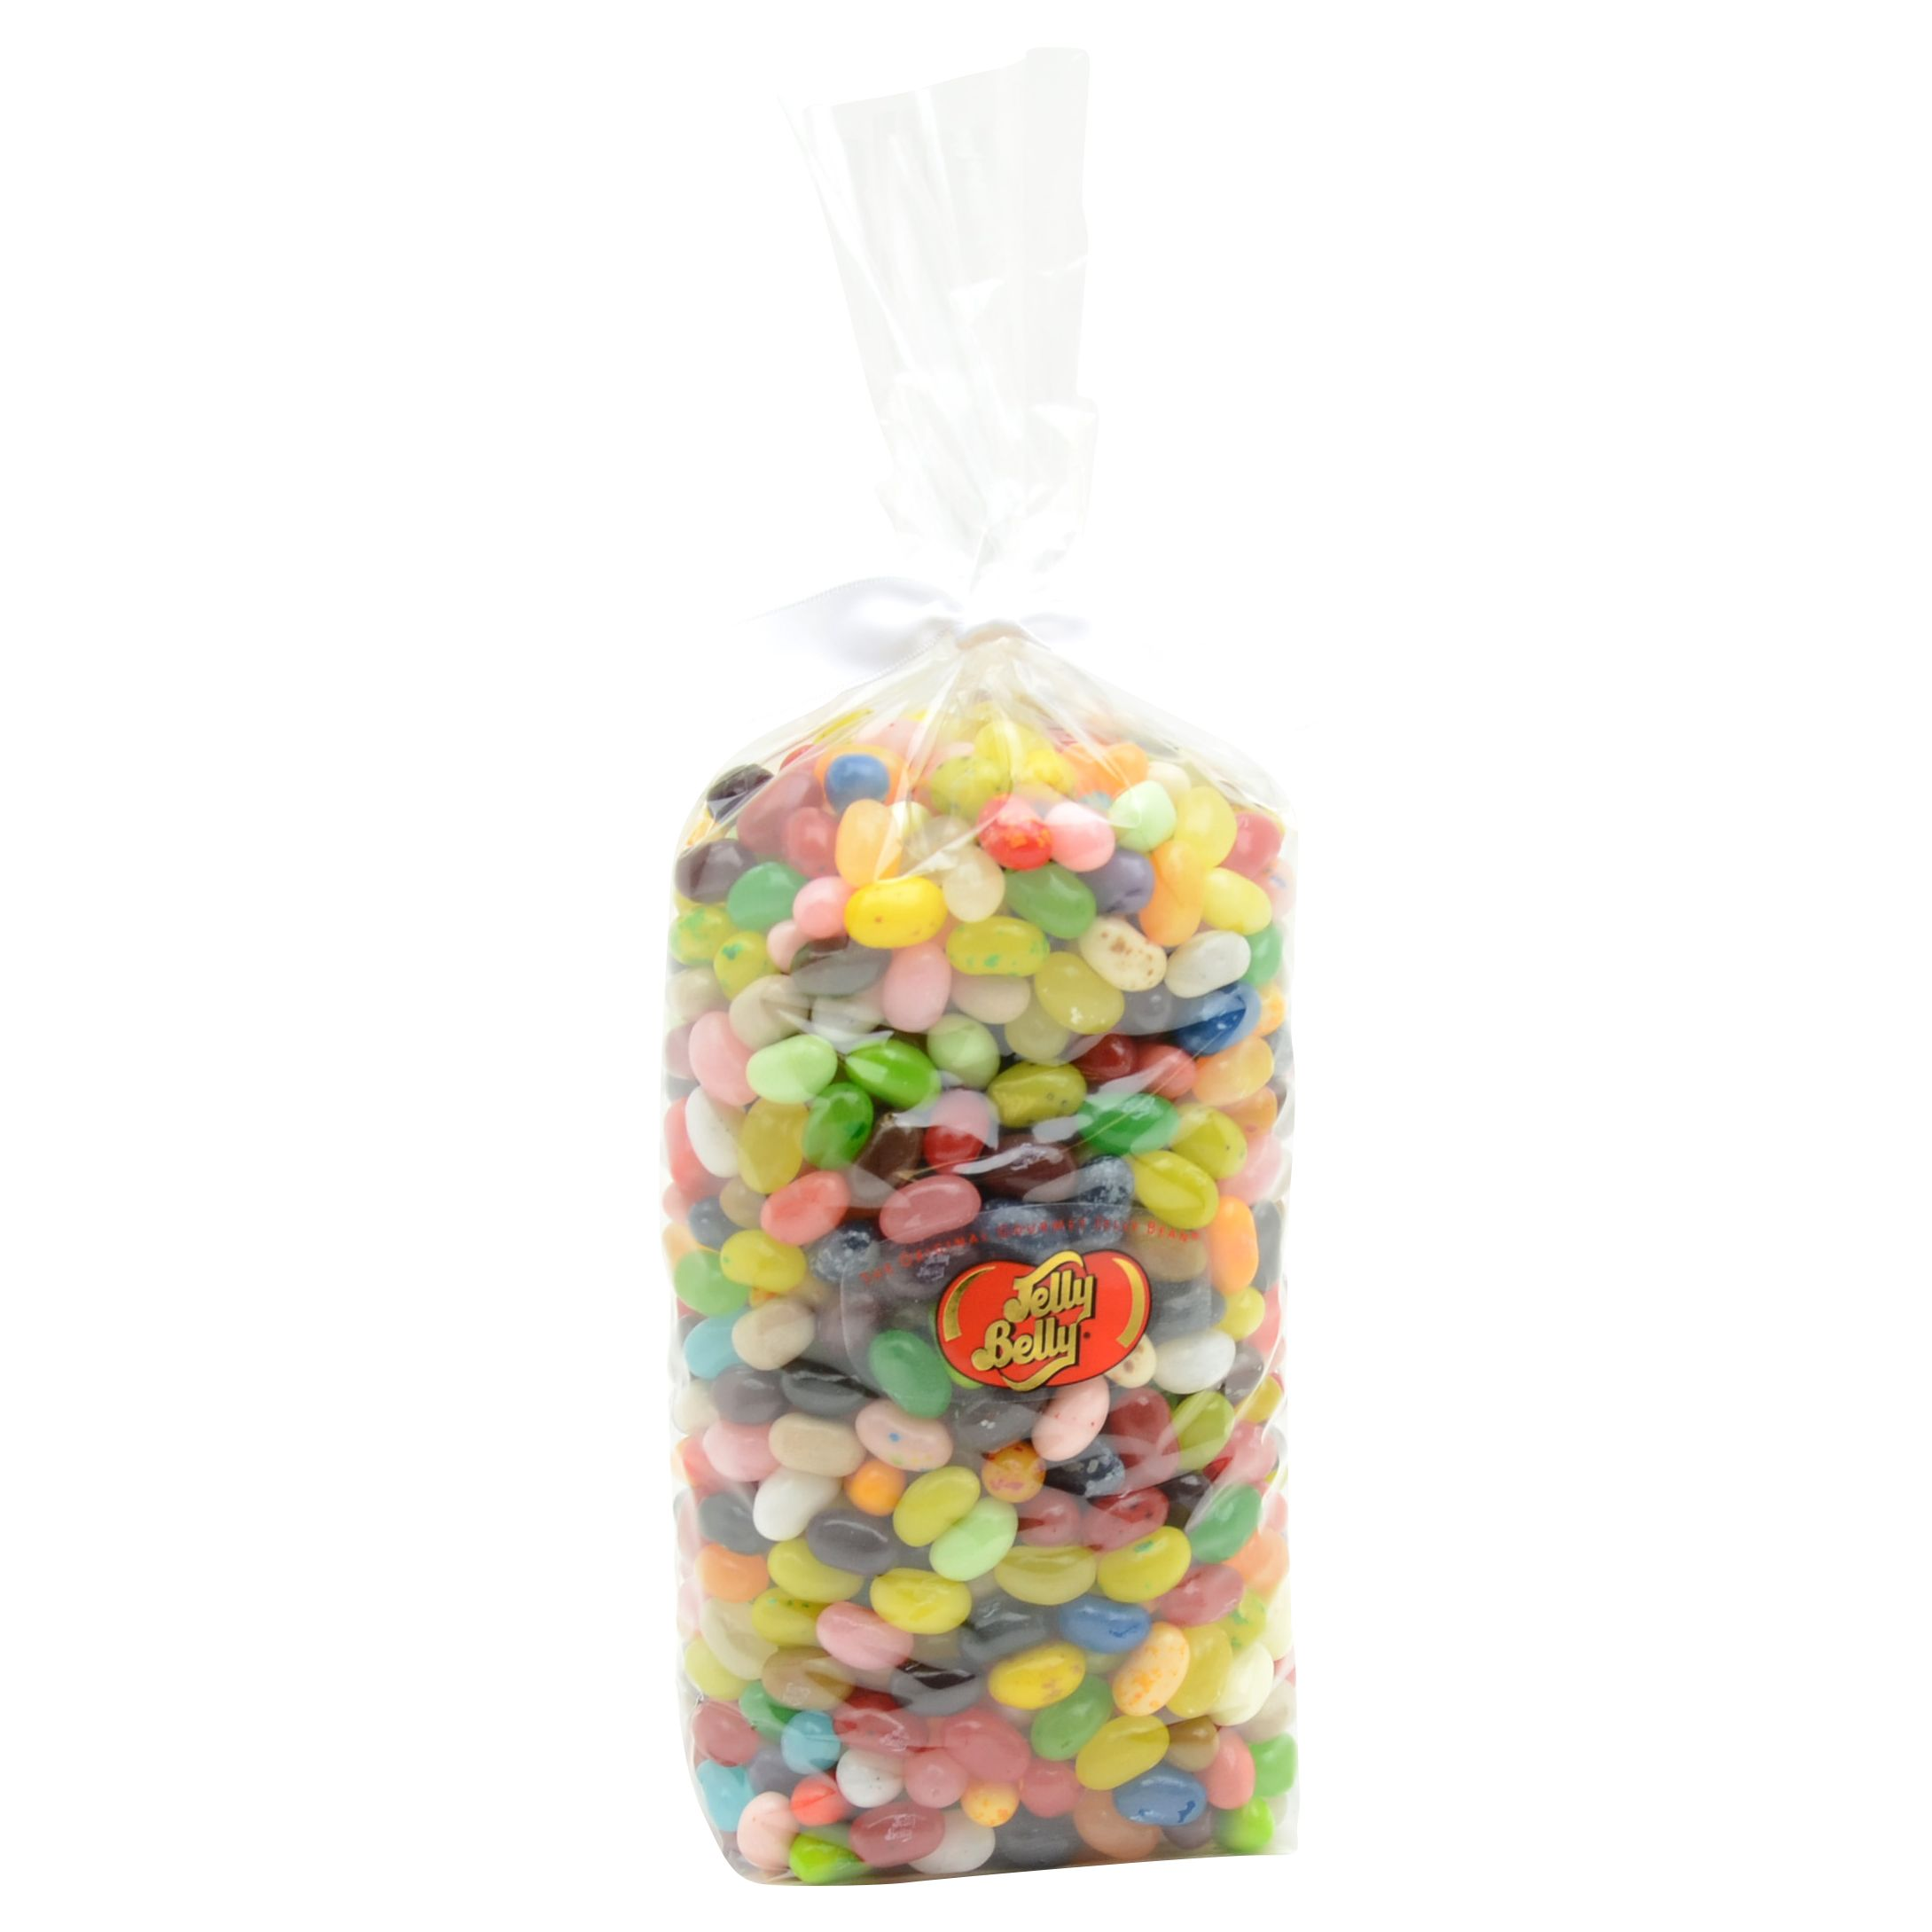 Jelly Belly Jelly Belly Assorted Beans, 1kg